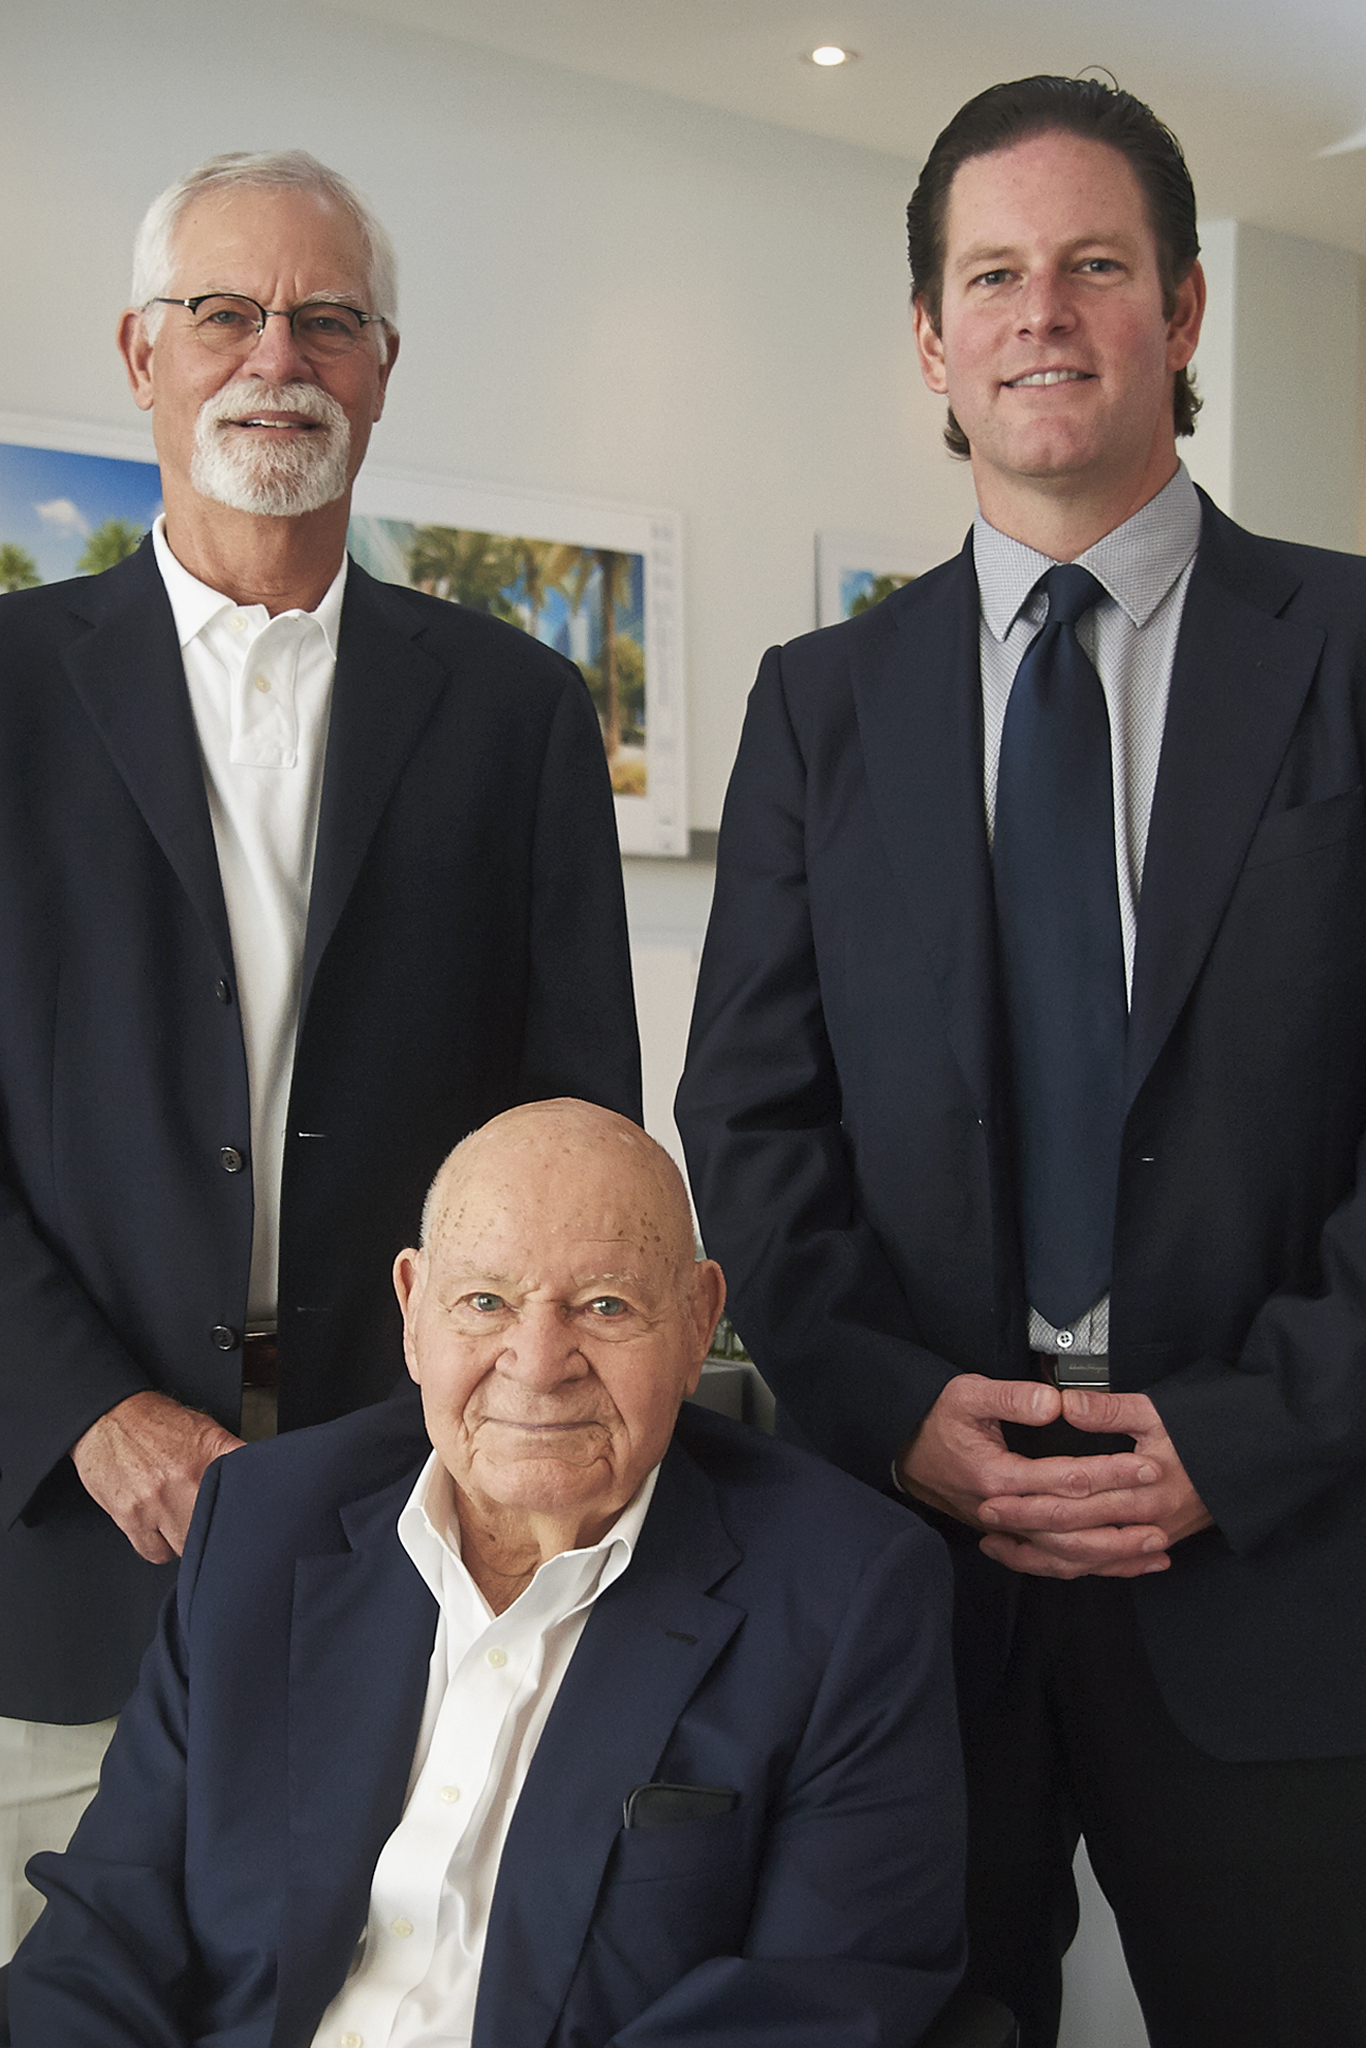 Randy Whitman, Matthew Whitman Lazenby and Stanley Whitman.